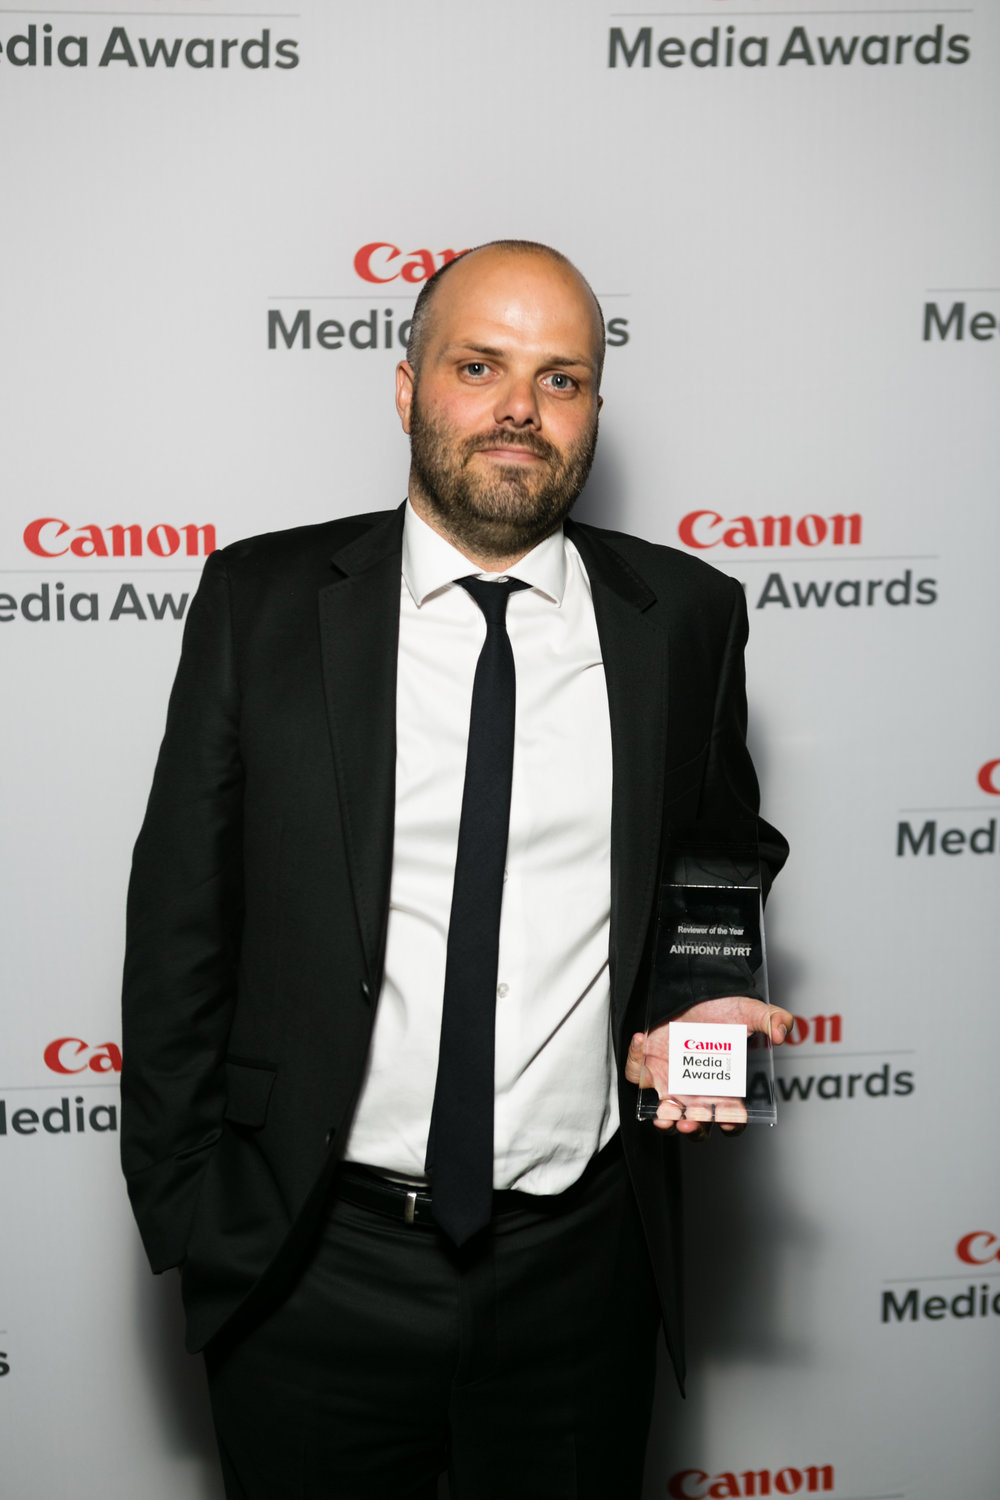 canon_media_awards_2015_interlike_nz_clinton_tudor-5866-169.jpg